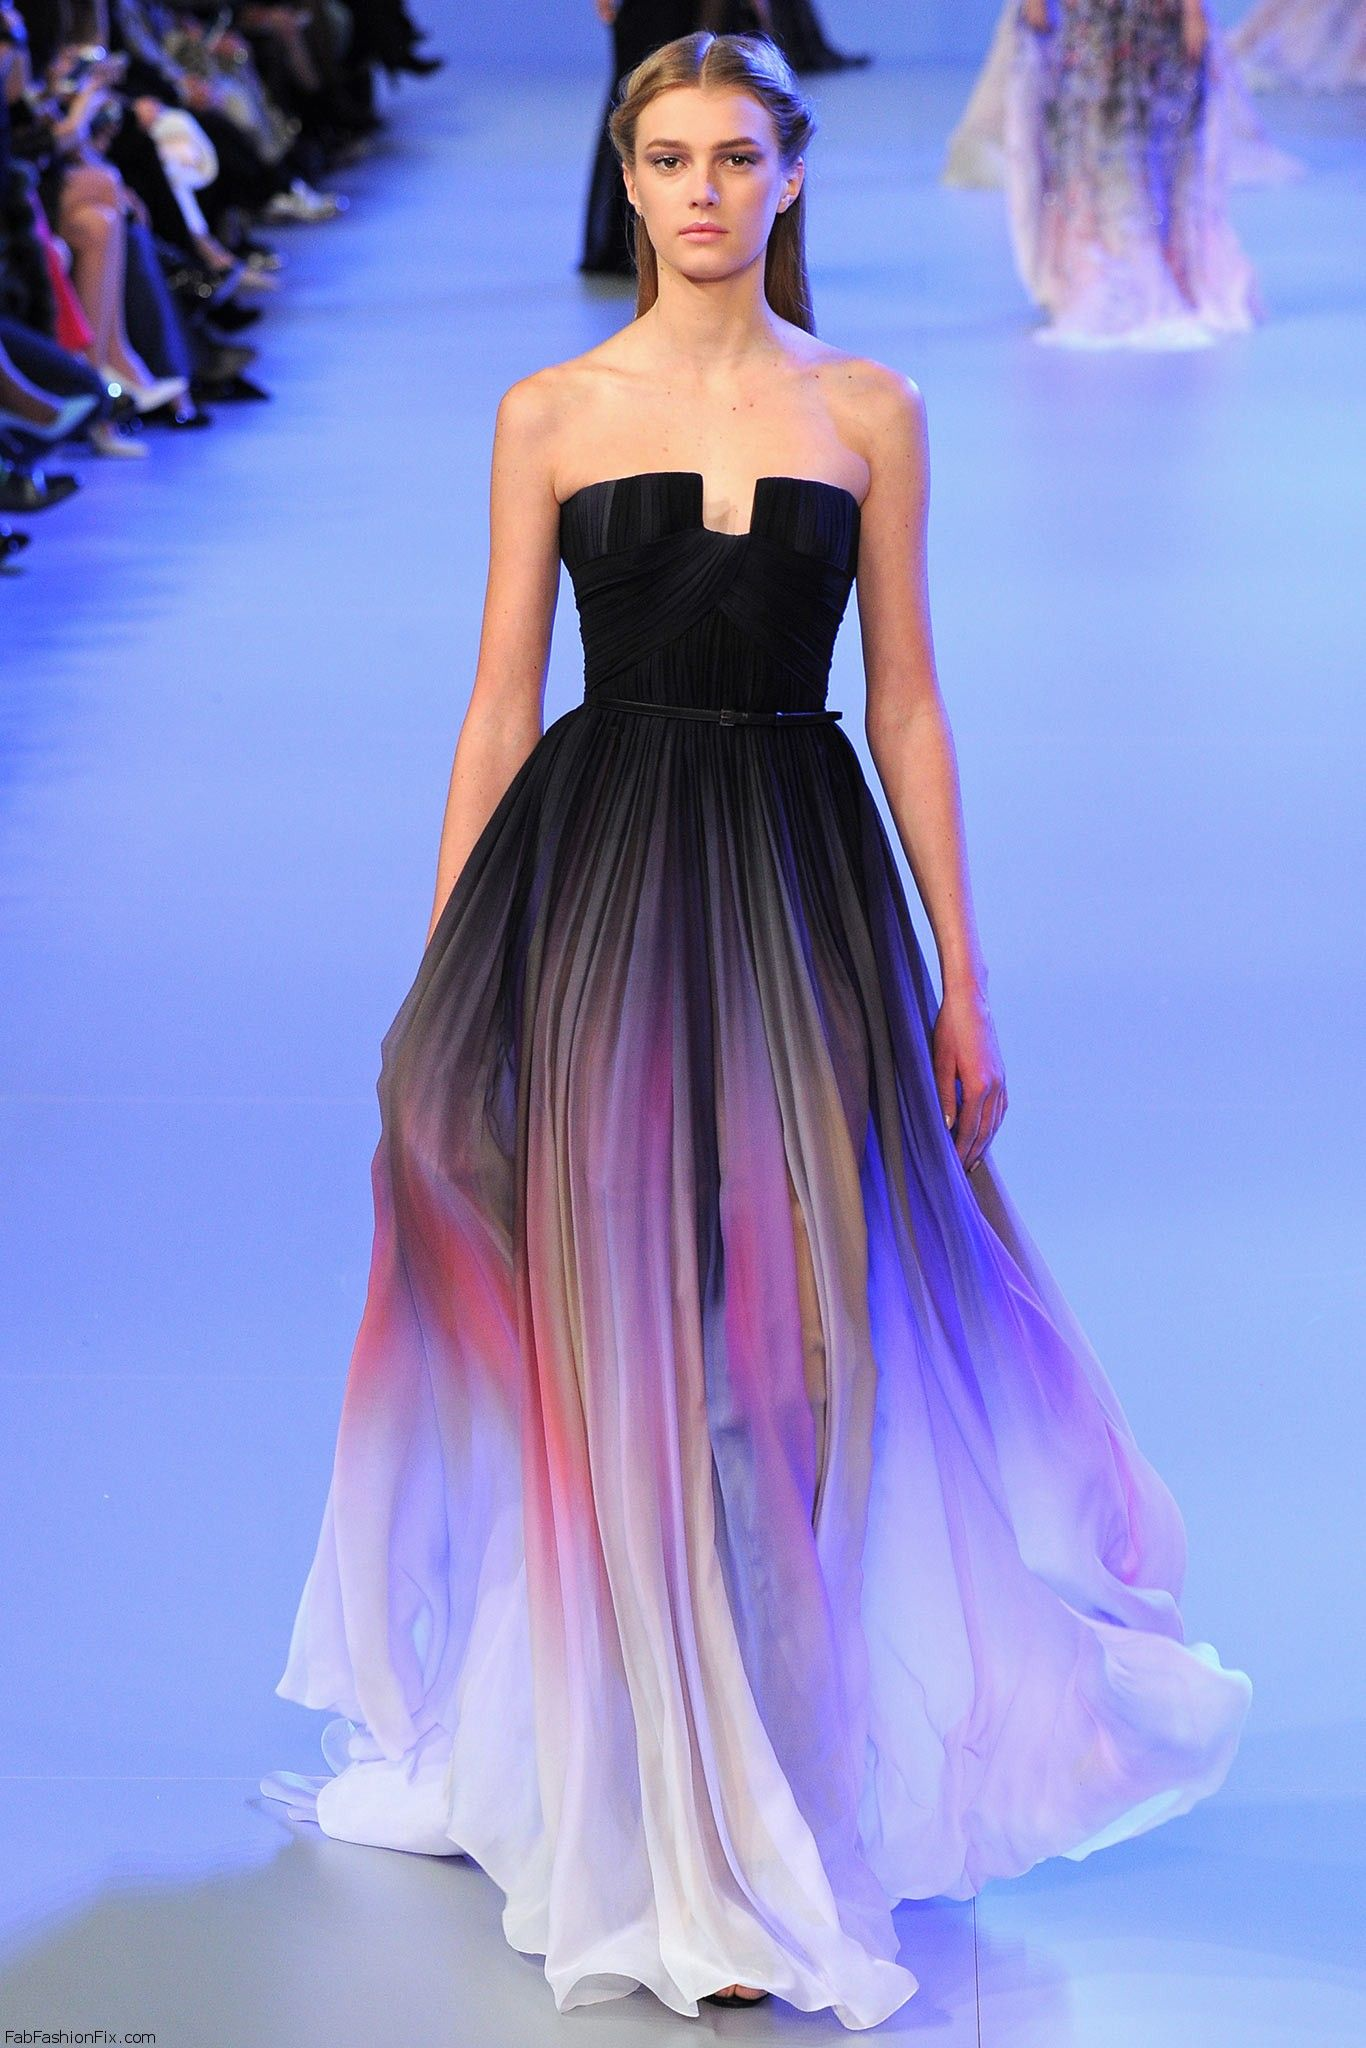 b2617df8040 Sigrid Agren for Elie Saab Haute Couture spring 2014 collection